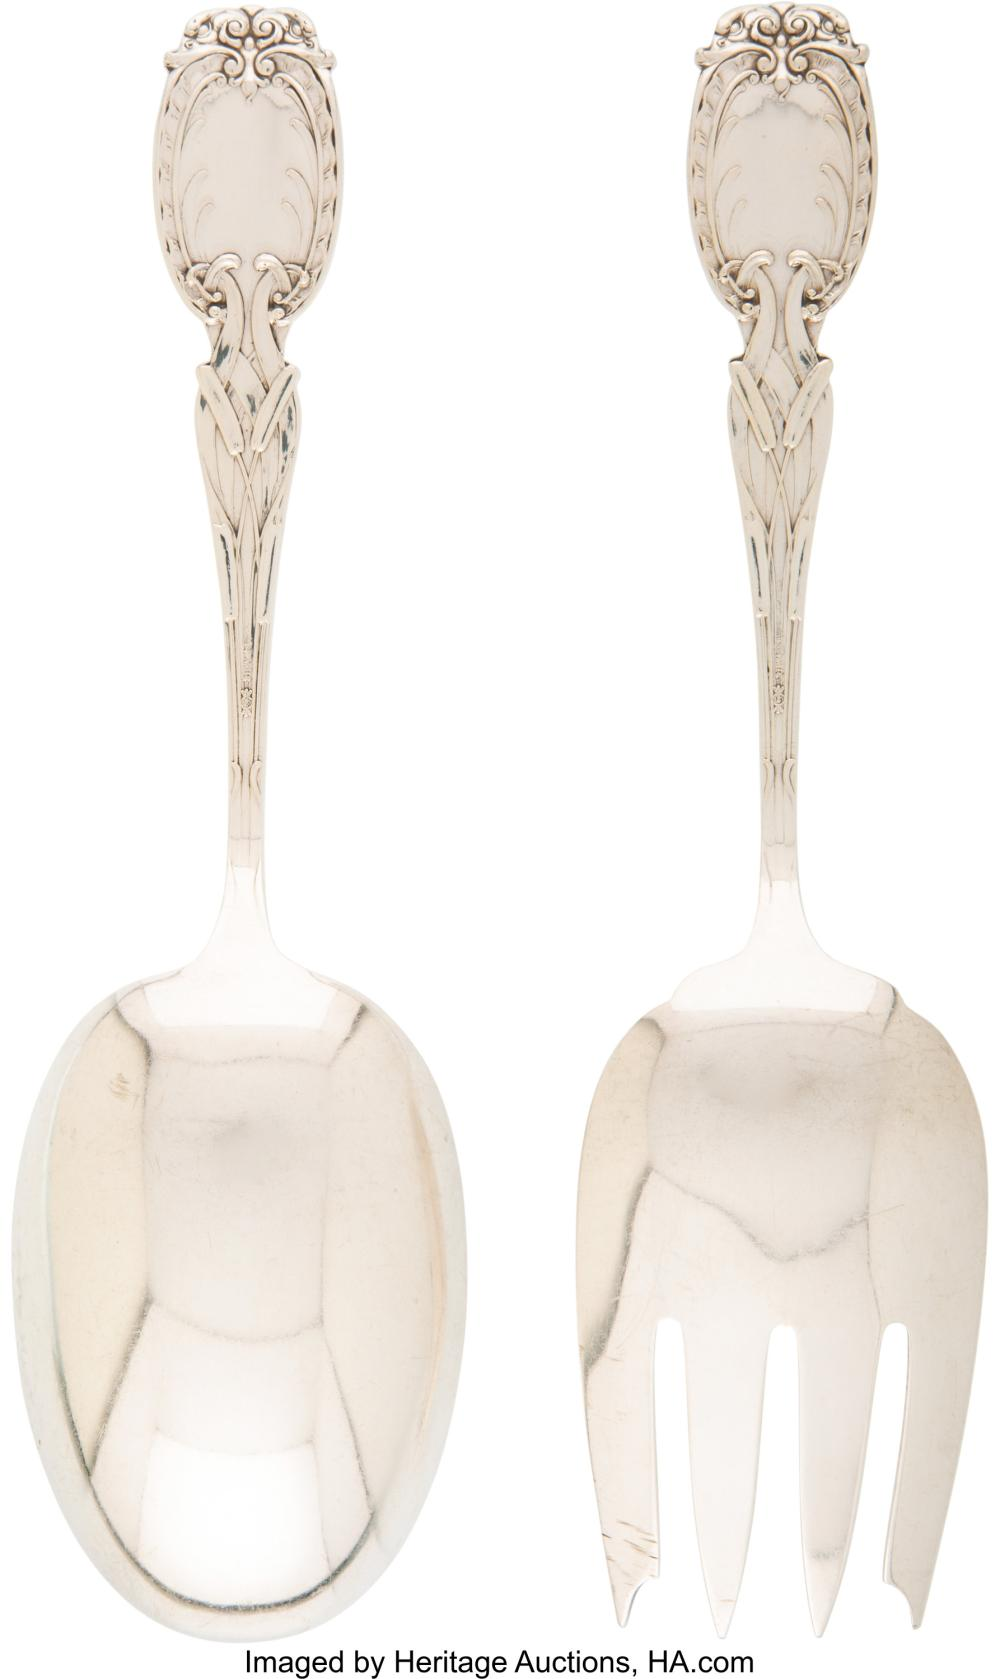 Lot 21056: A Frank M. Whiting Co. Cattails Pattern Silver Salad Serving Set, North Attlebor